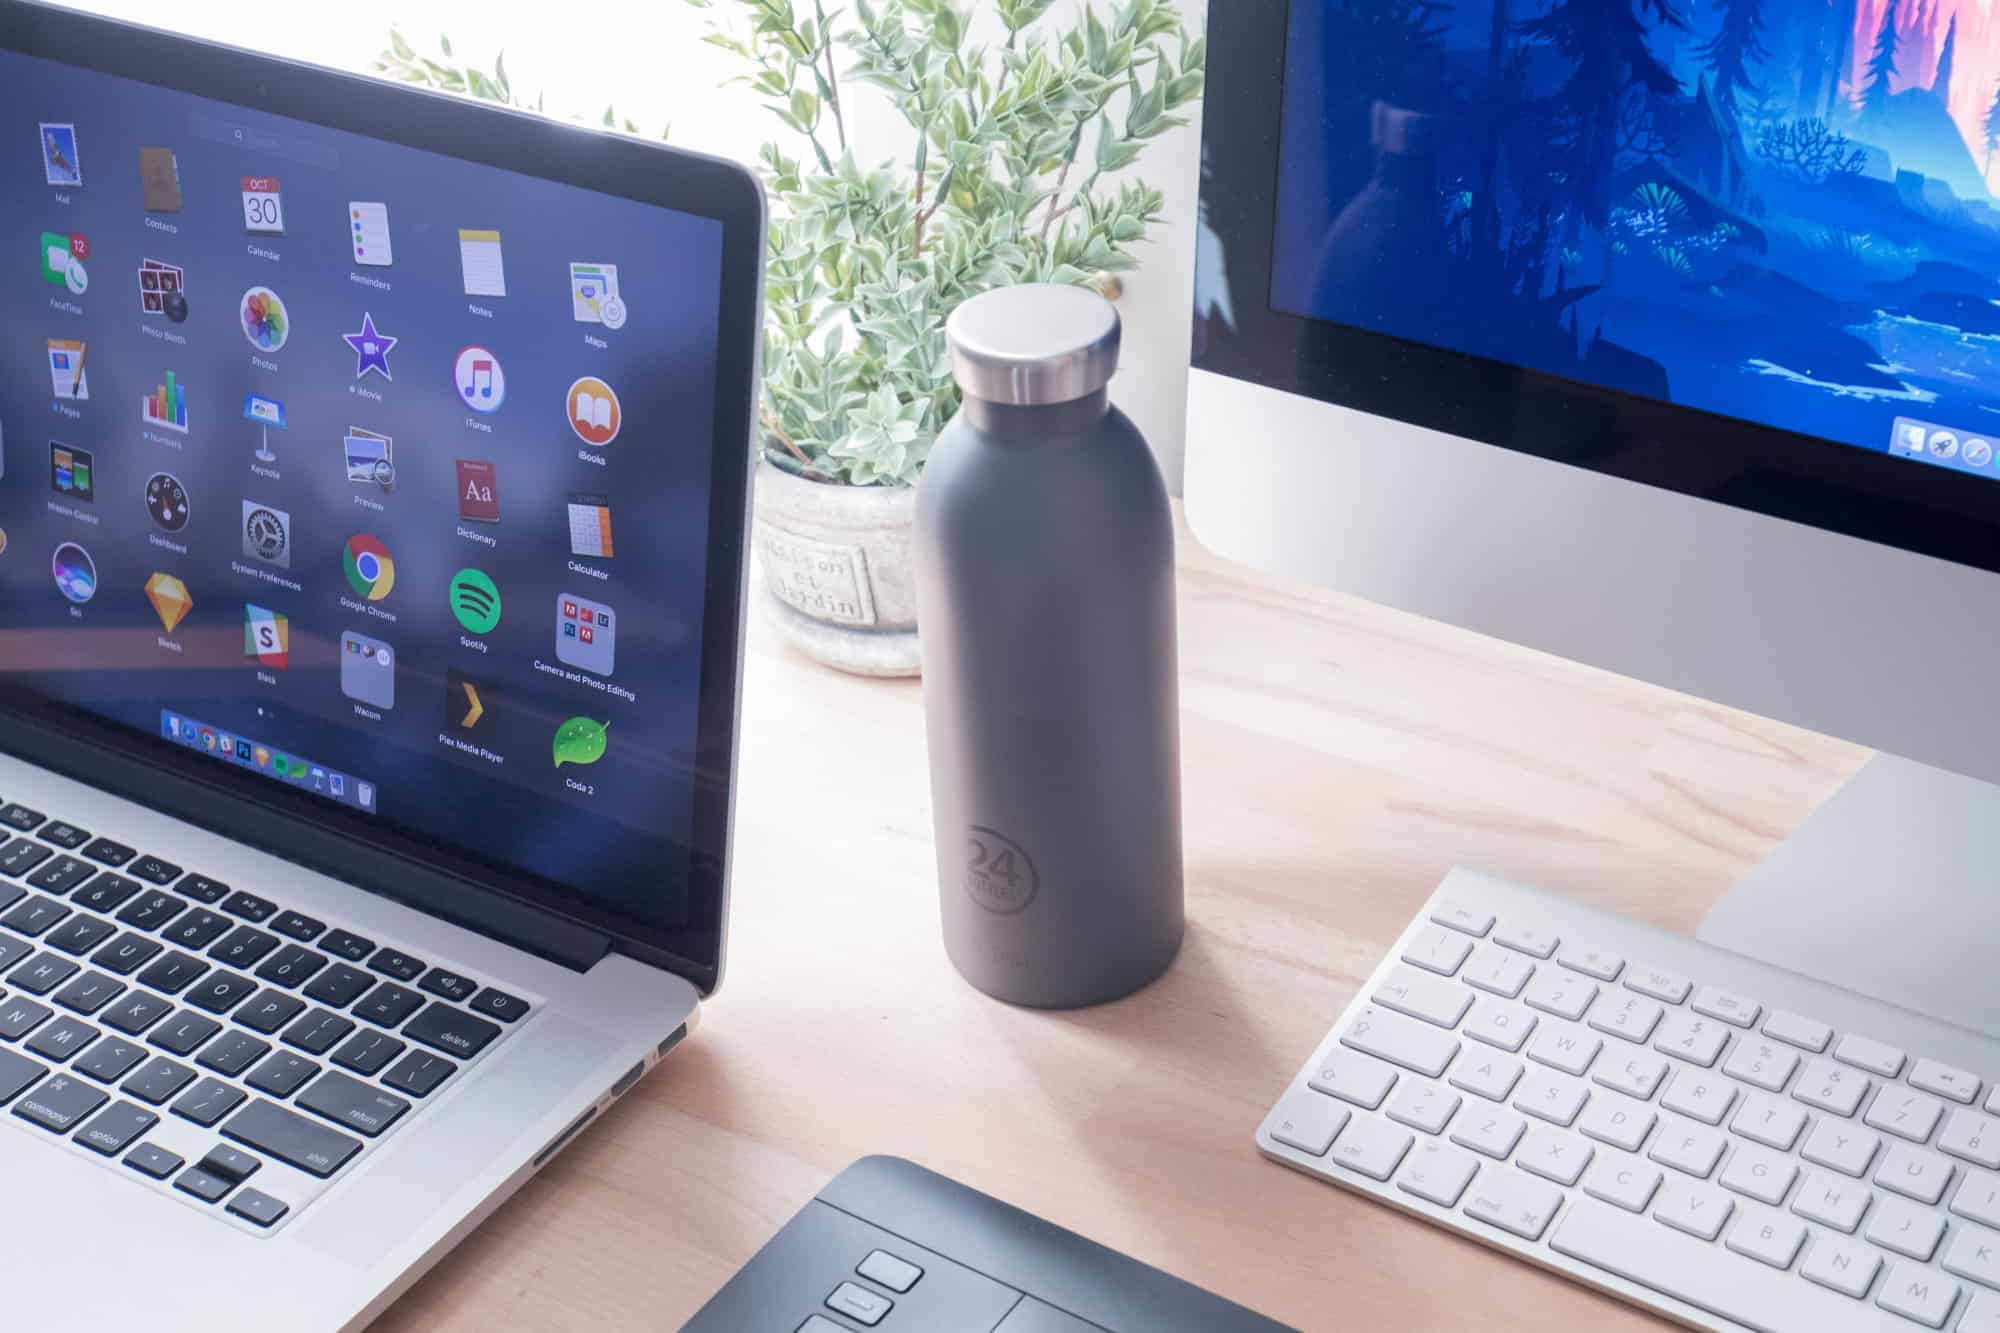 Water bottle on desk by laptop and desktop